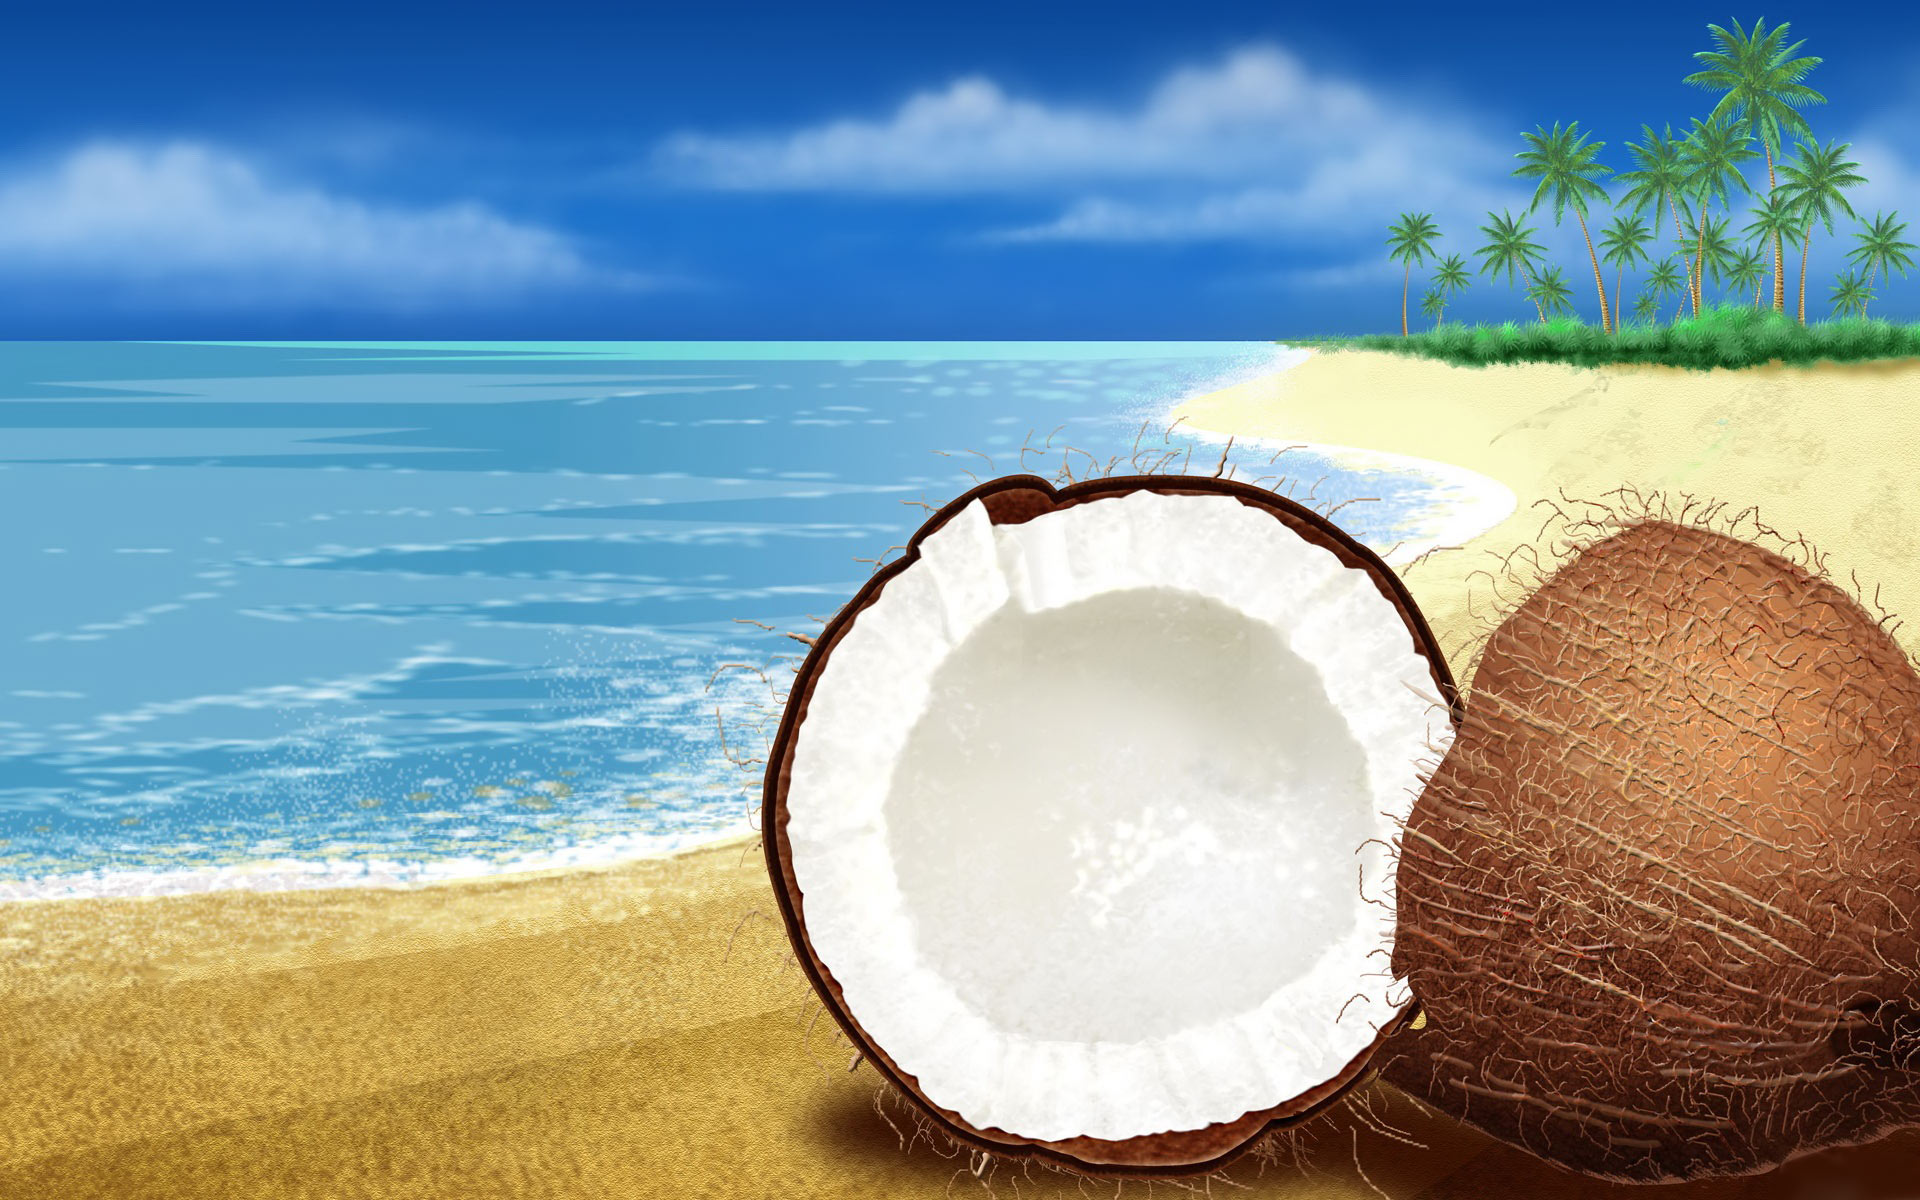 Coconut Beach free windows 7 backgrounds Desktop Wallpaperjpg 1920x1200